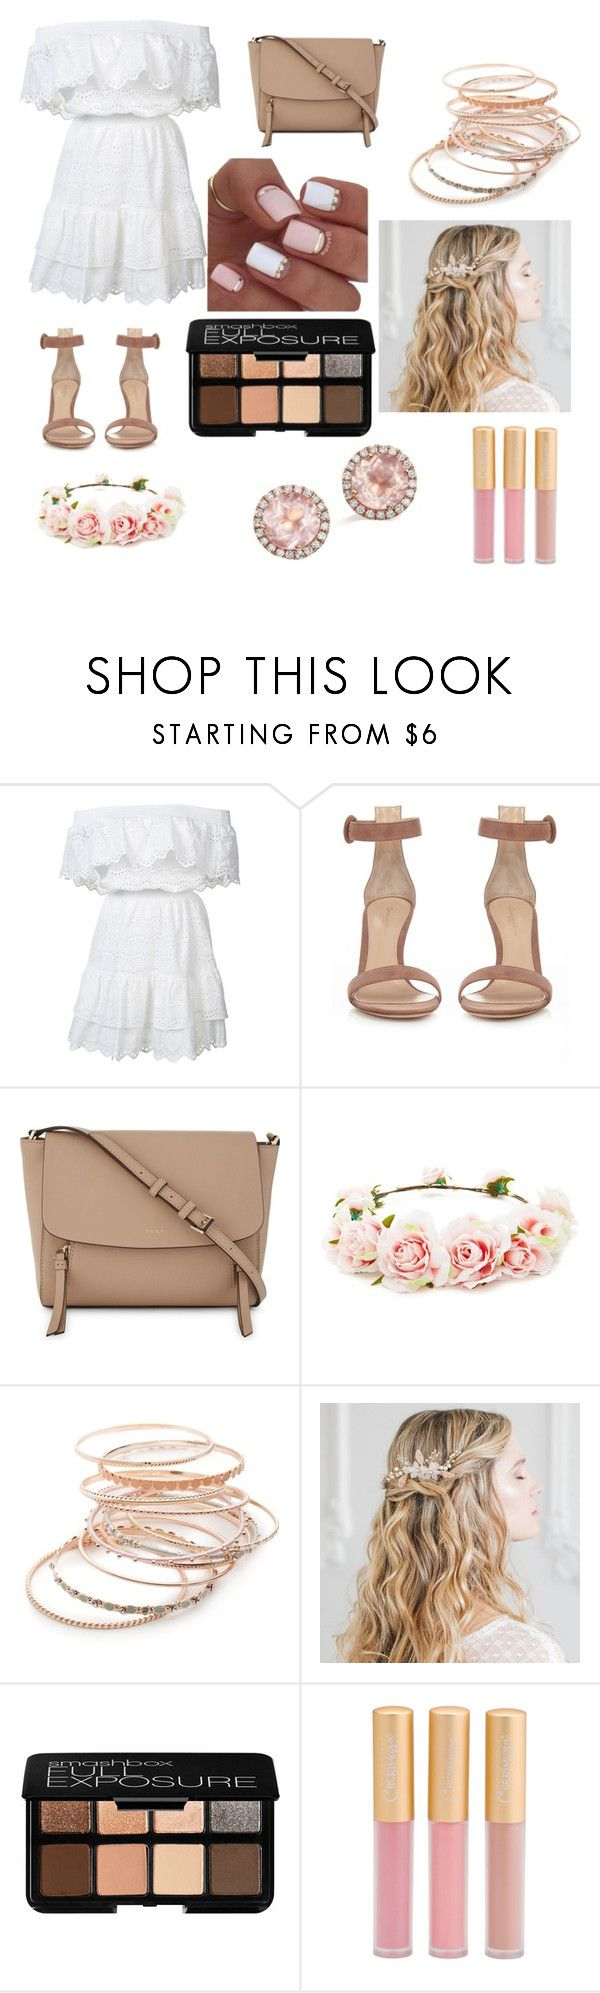 """""""#Пляжная_вечеринка"""" by ivaskweek ❤ liked on Polyvore featuring LoveShackFancy, Gianvito Rossi, DKNY, Forever 21, Red Camel, Smashbox and Dana Rebecca Designs"""